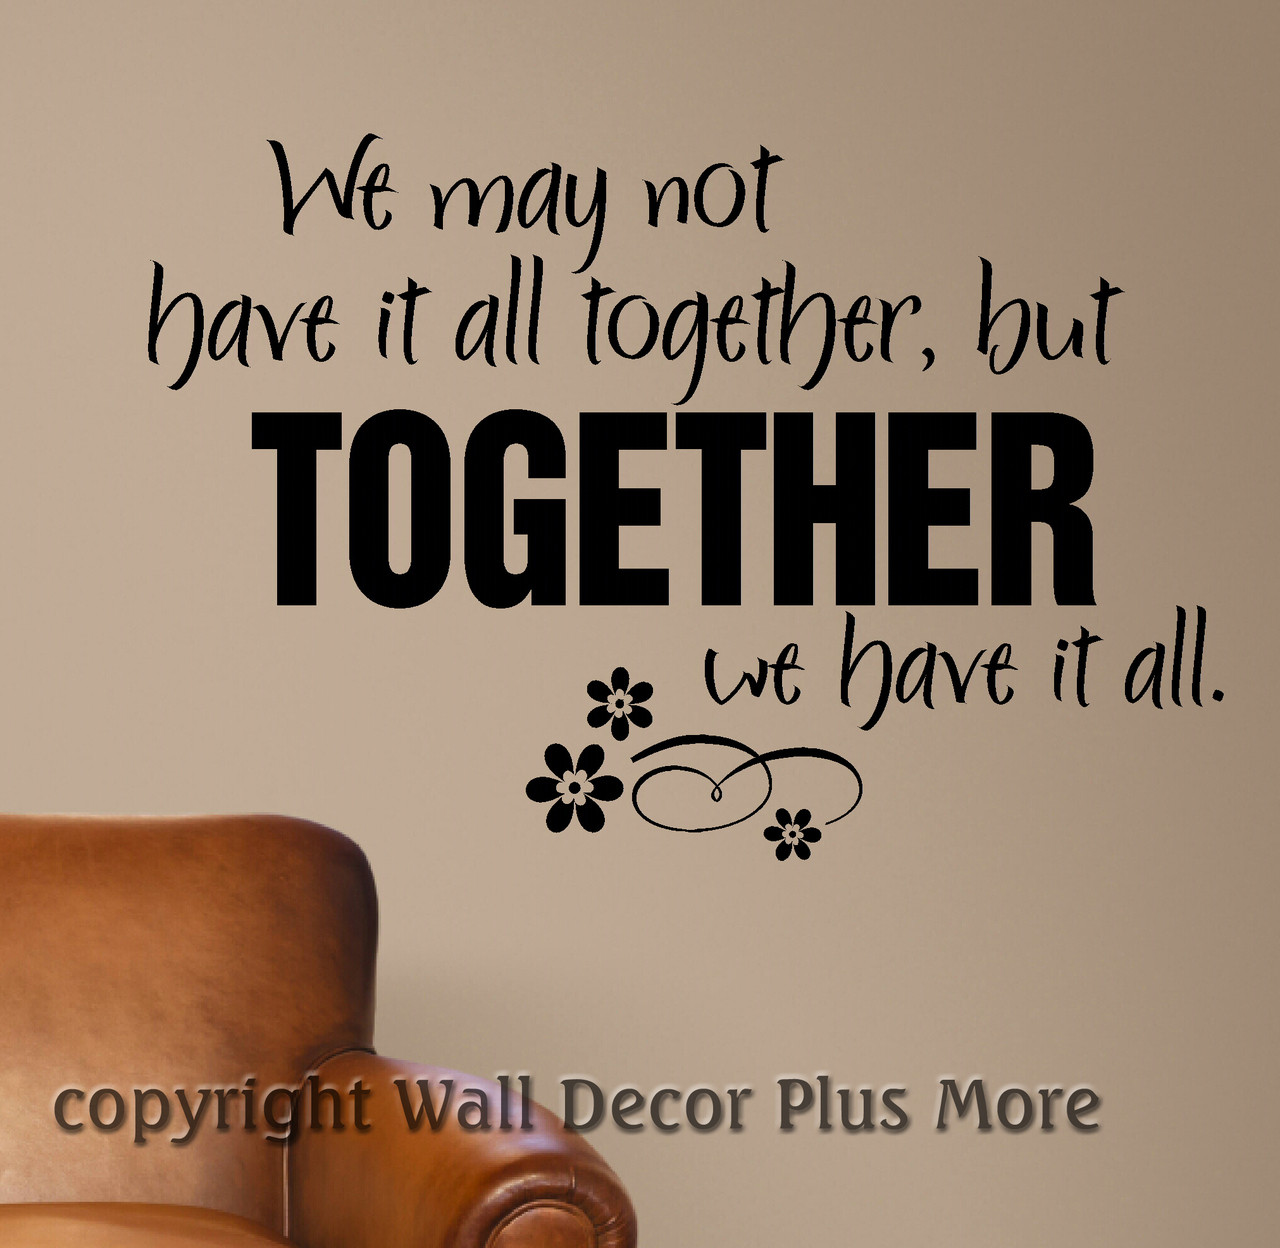 We may not have it all together family wall quotes wall decal we may not have it all together family wall quotes wall decal stickers loading zoom amipublicfo Choice Image